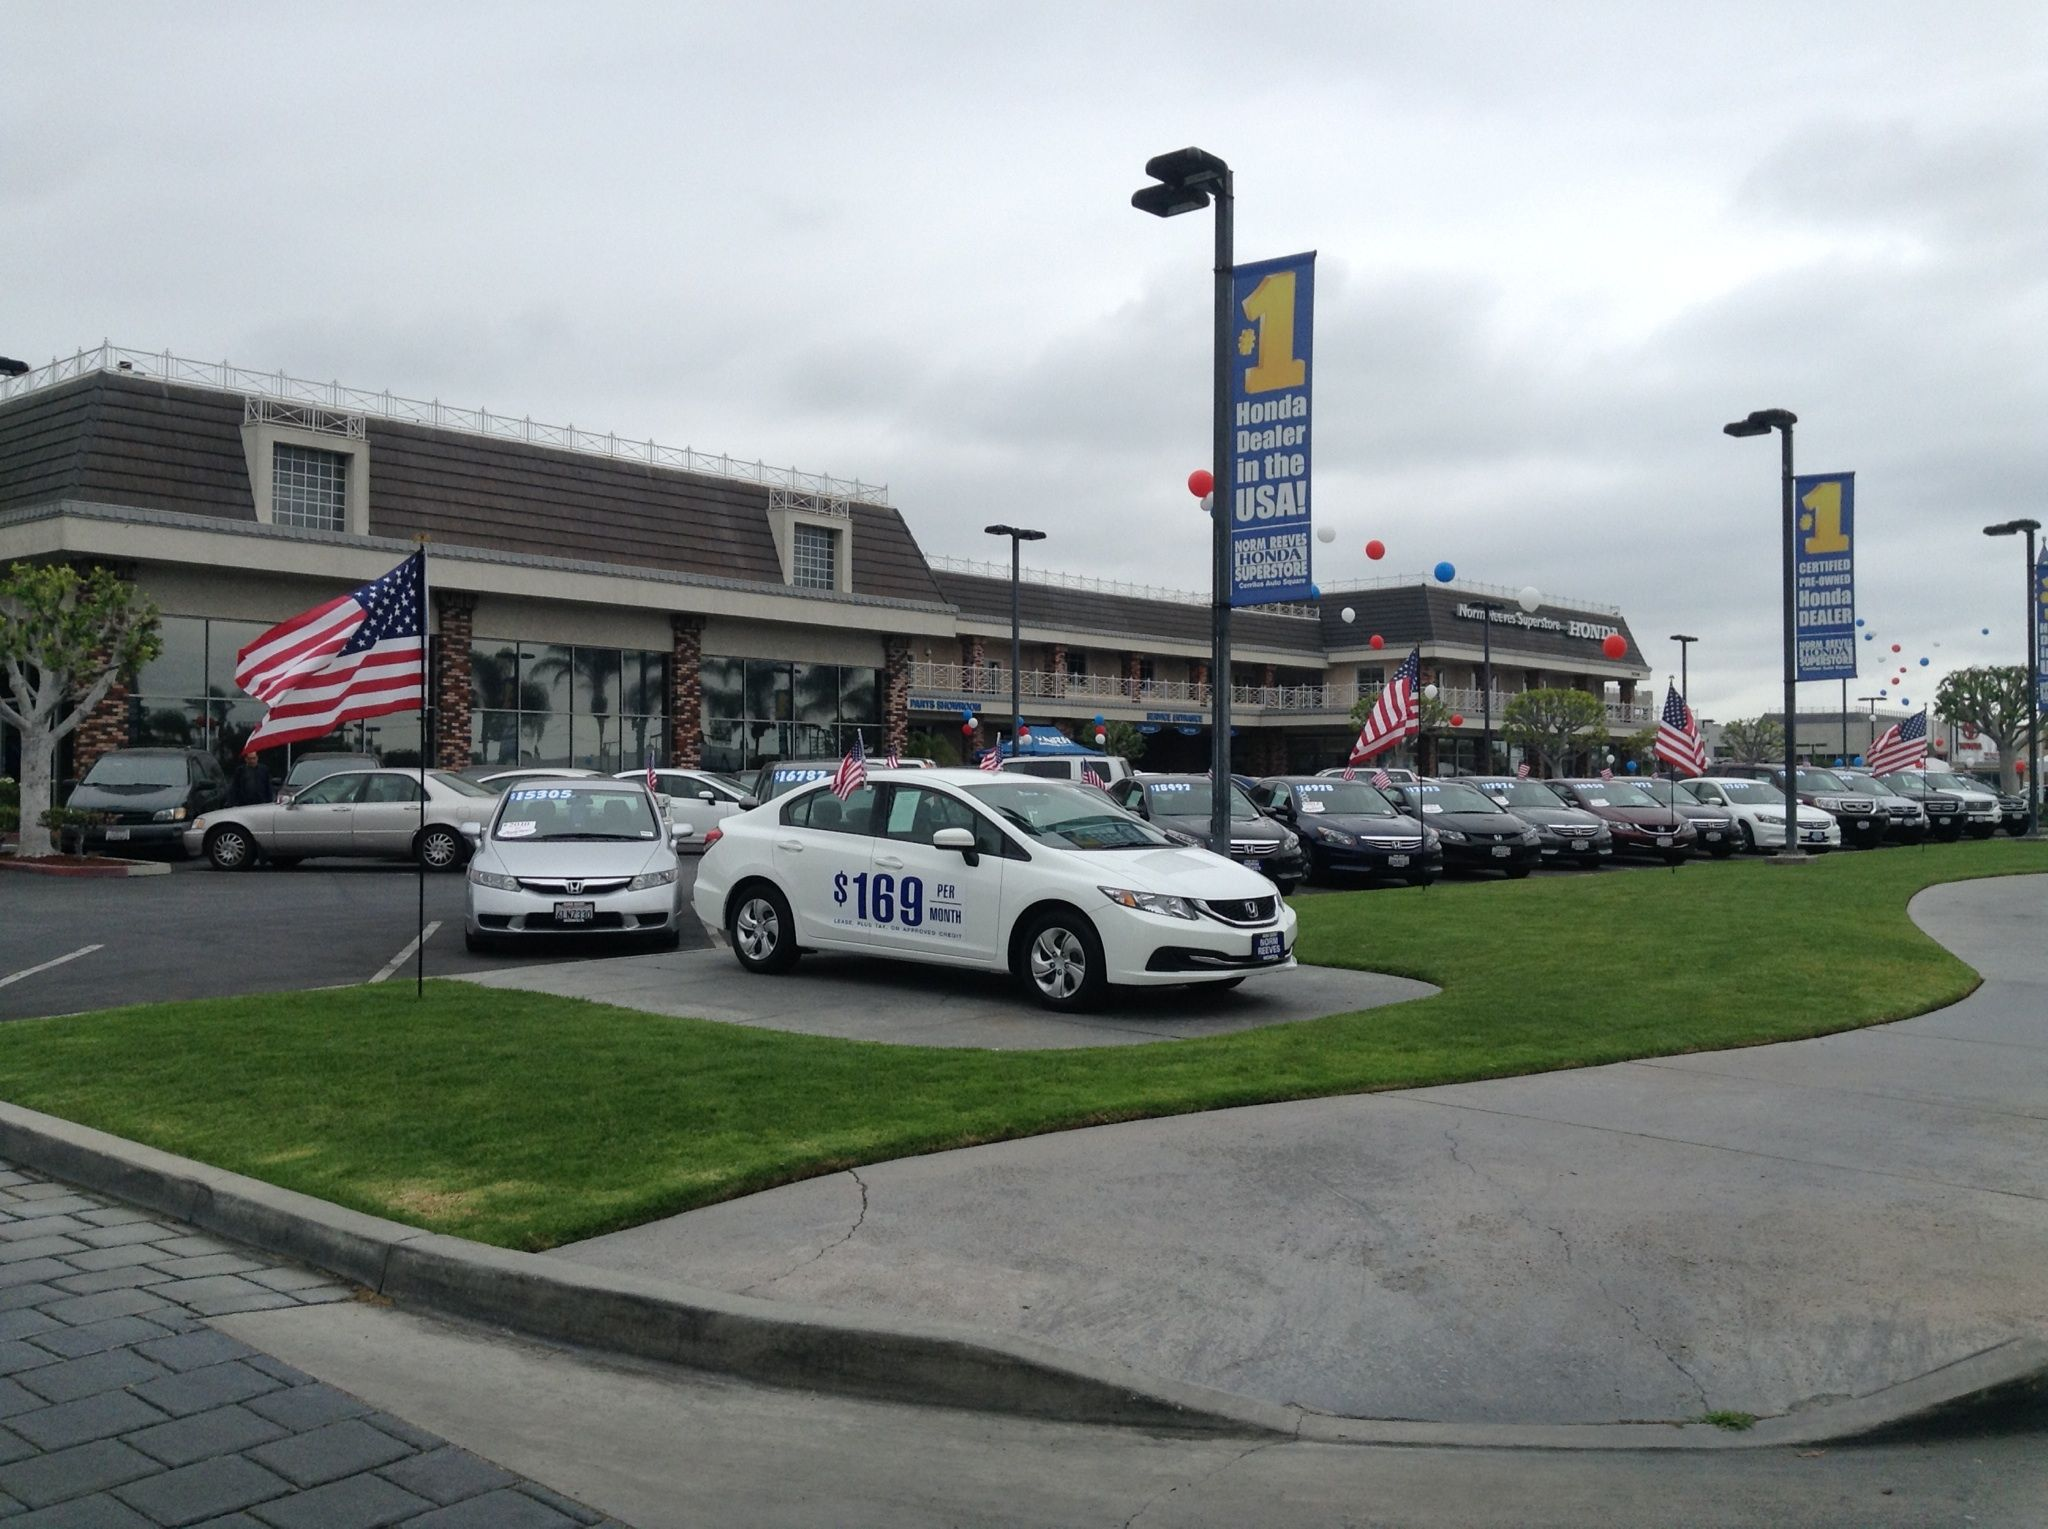 Norm Reeves Honda Superstore located in the Cerritos Auto Square can